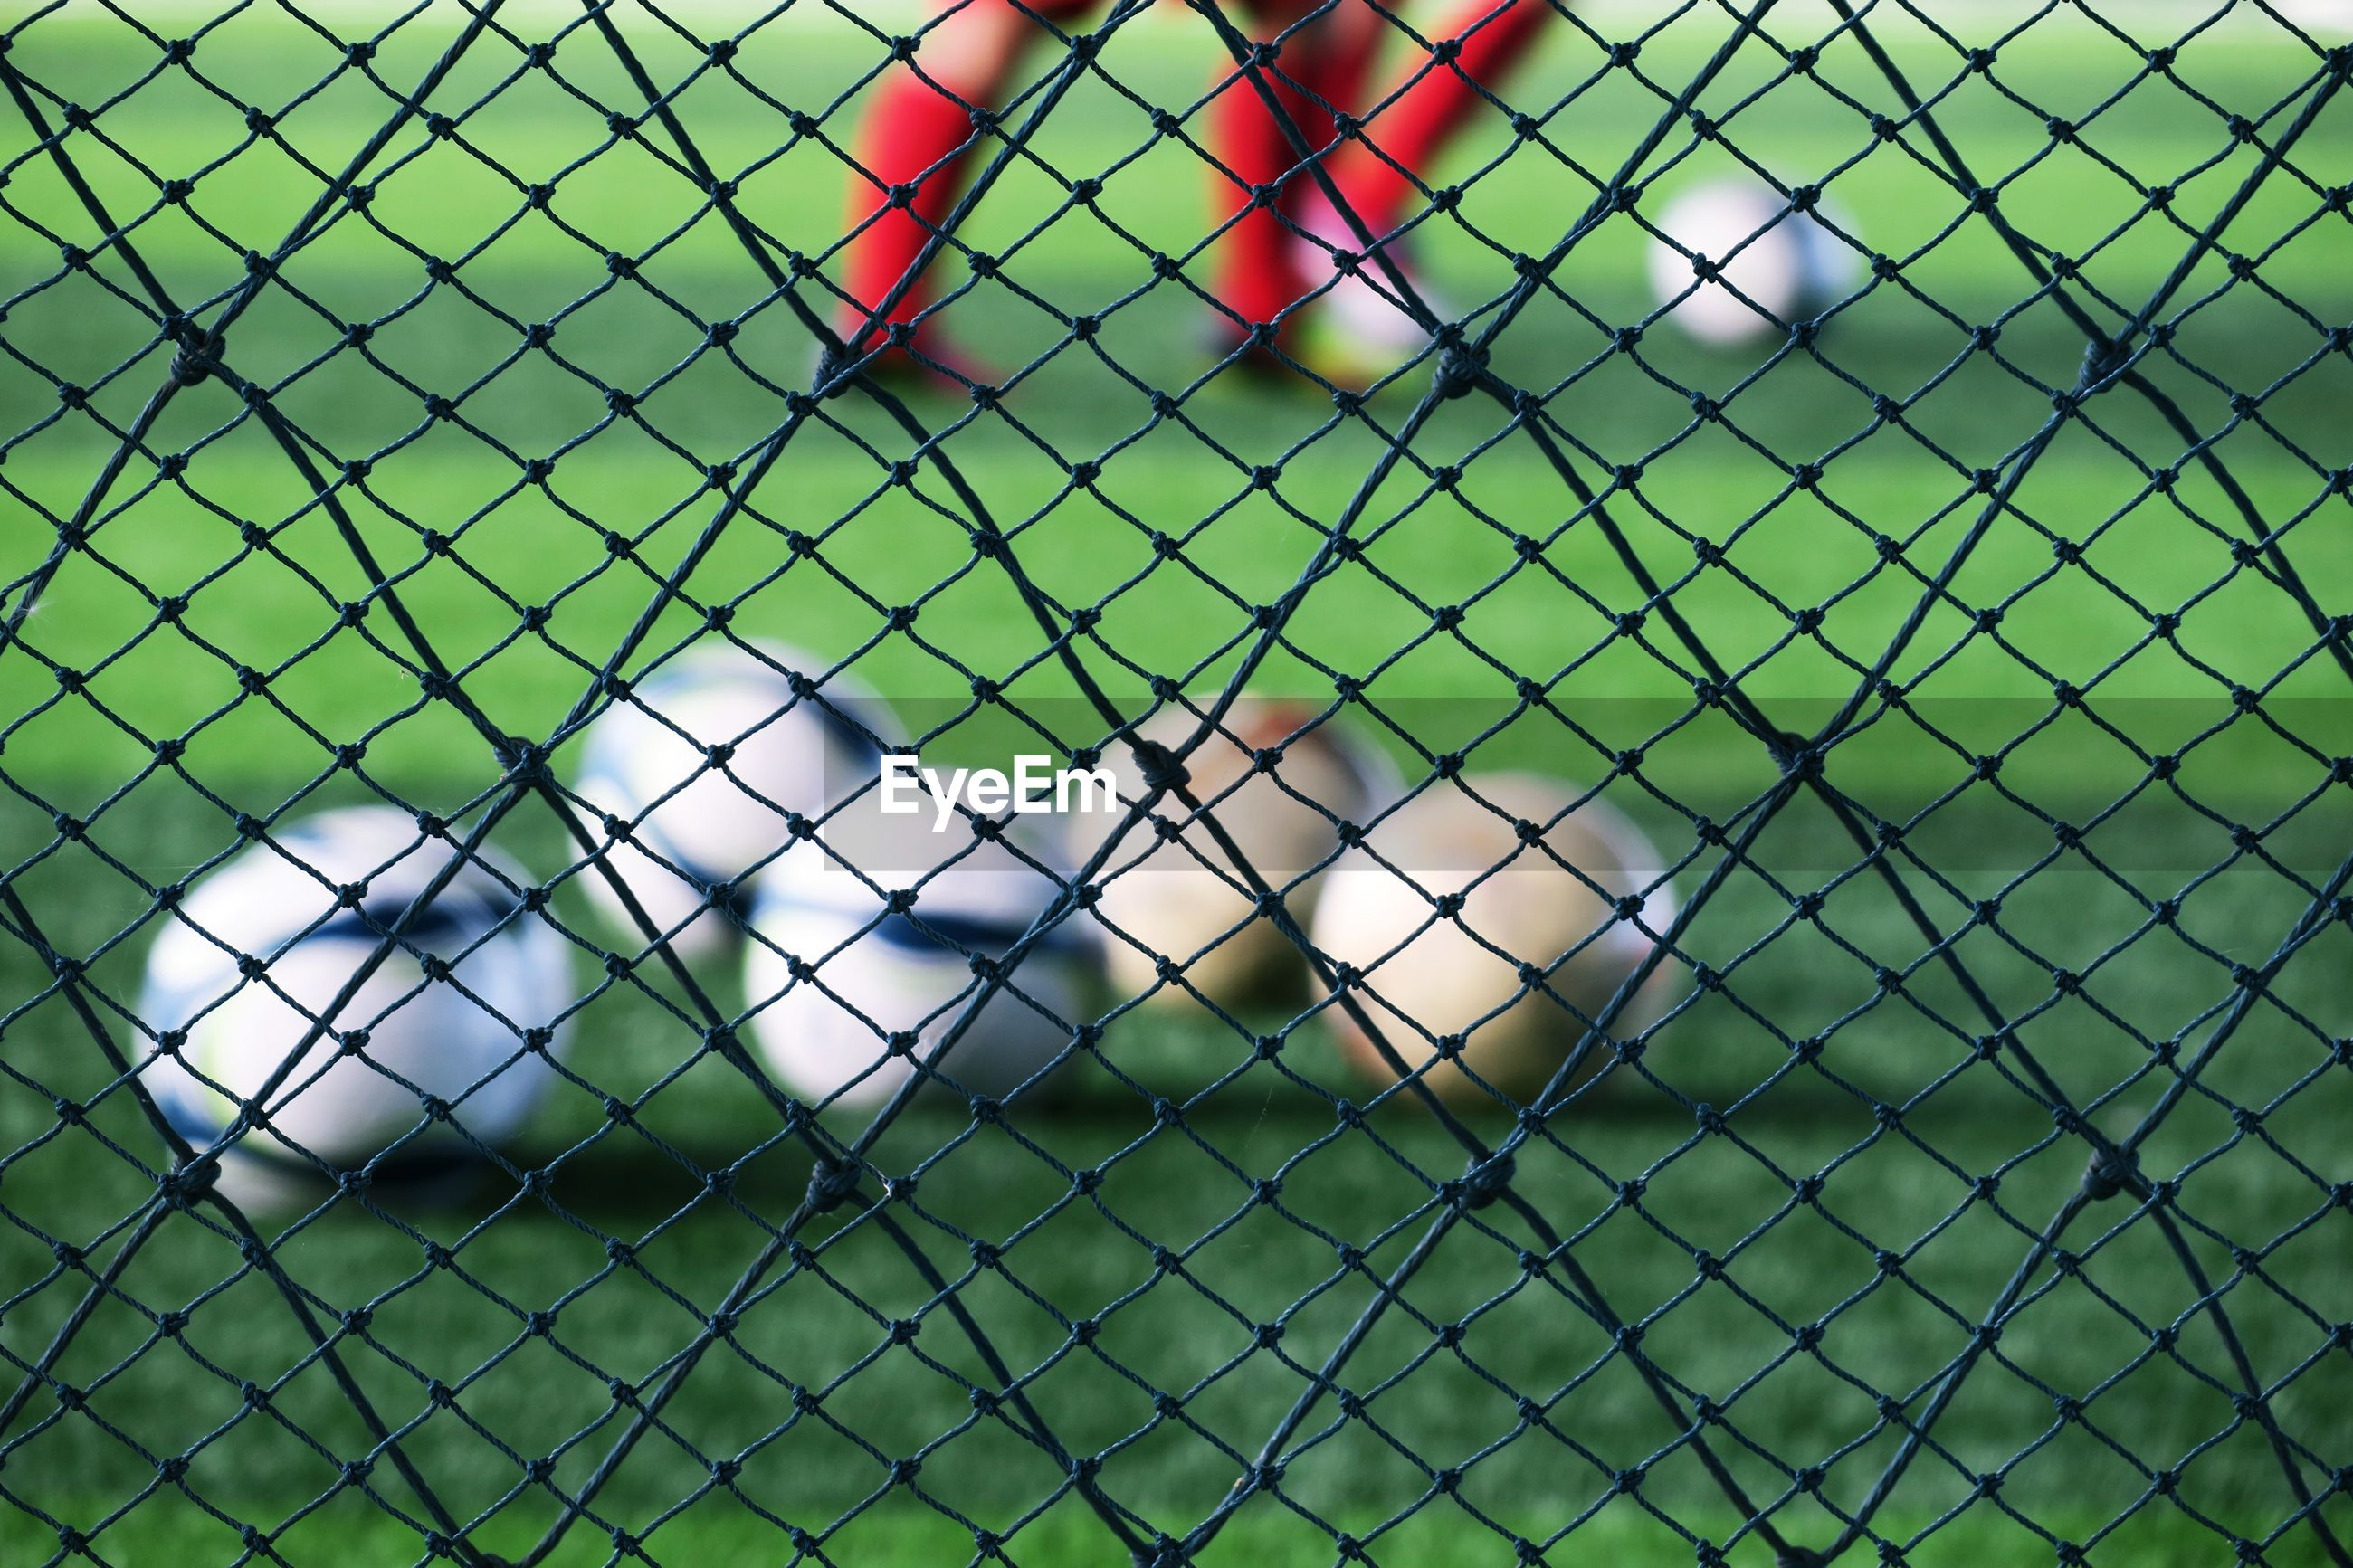 Low section of soccer players playing on field seen through net